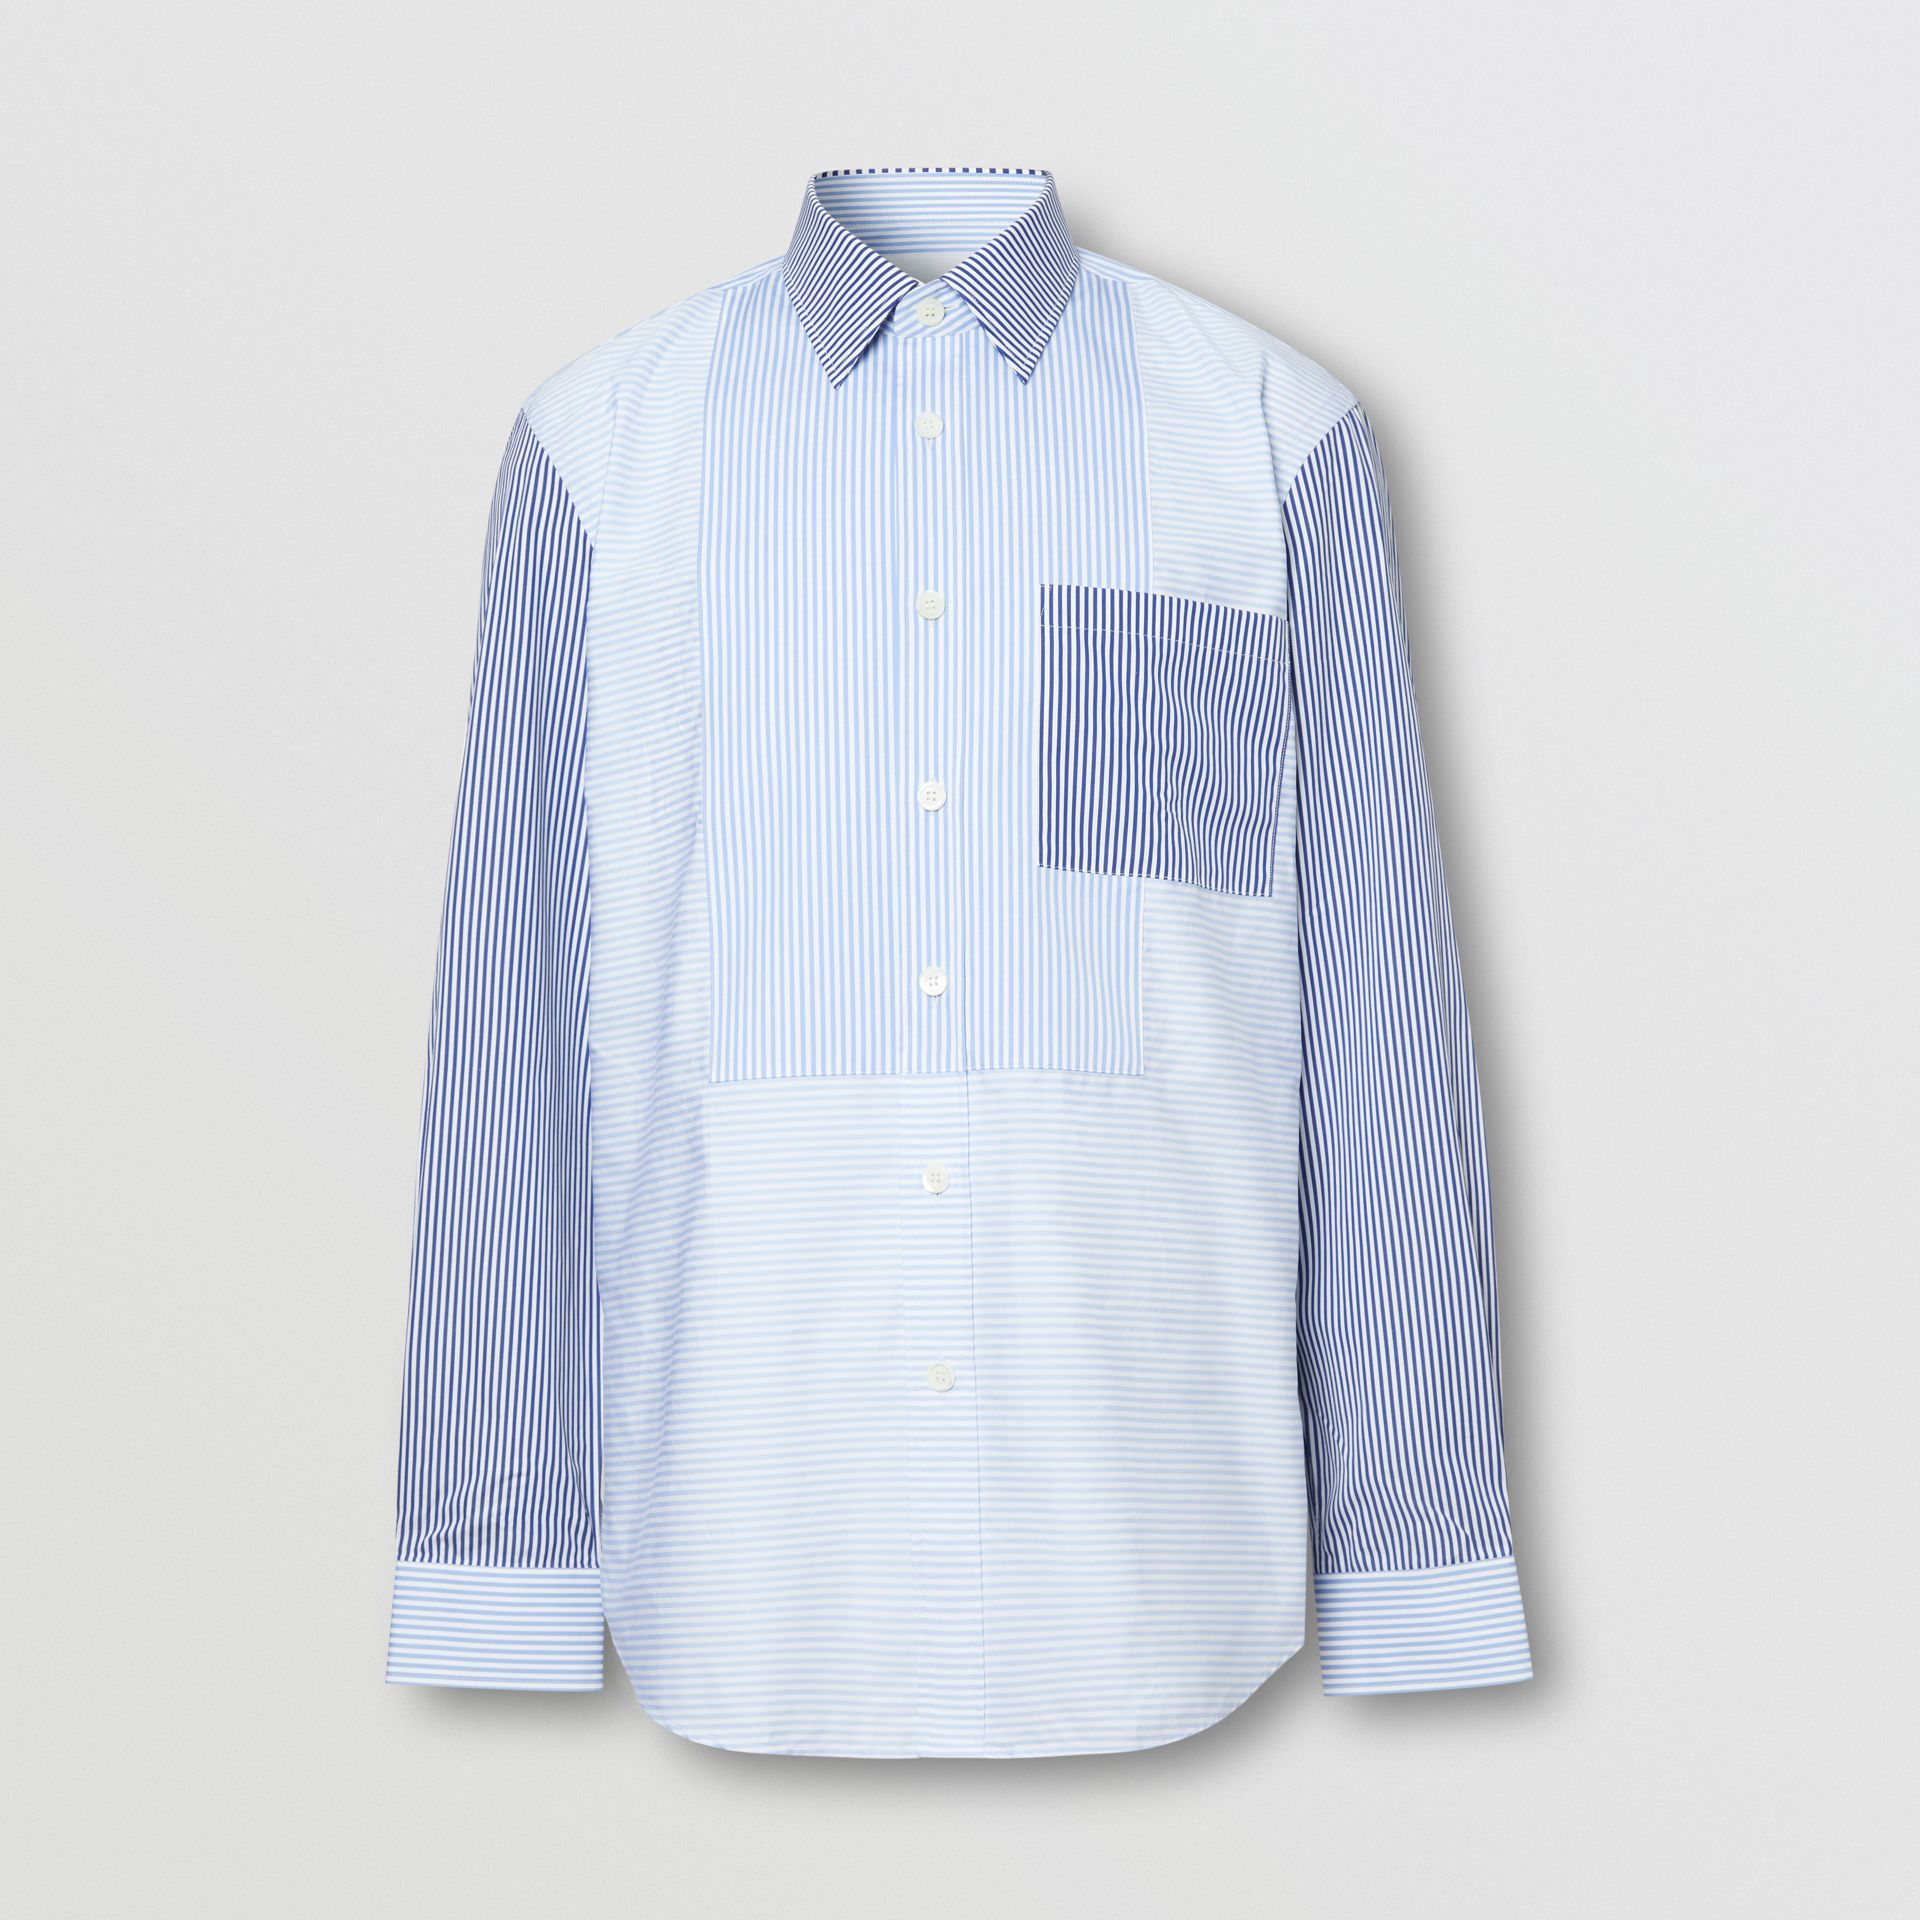 Classic Fit Patchwork Striped Cotton Shirt in Light Blue - Men | Burberry United Kingdom - gallery image 3